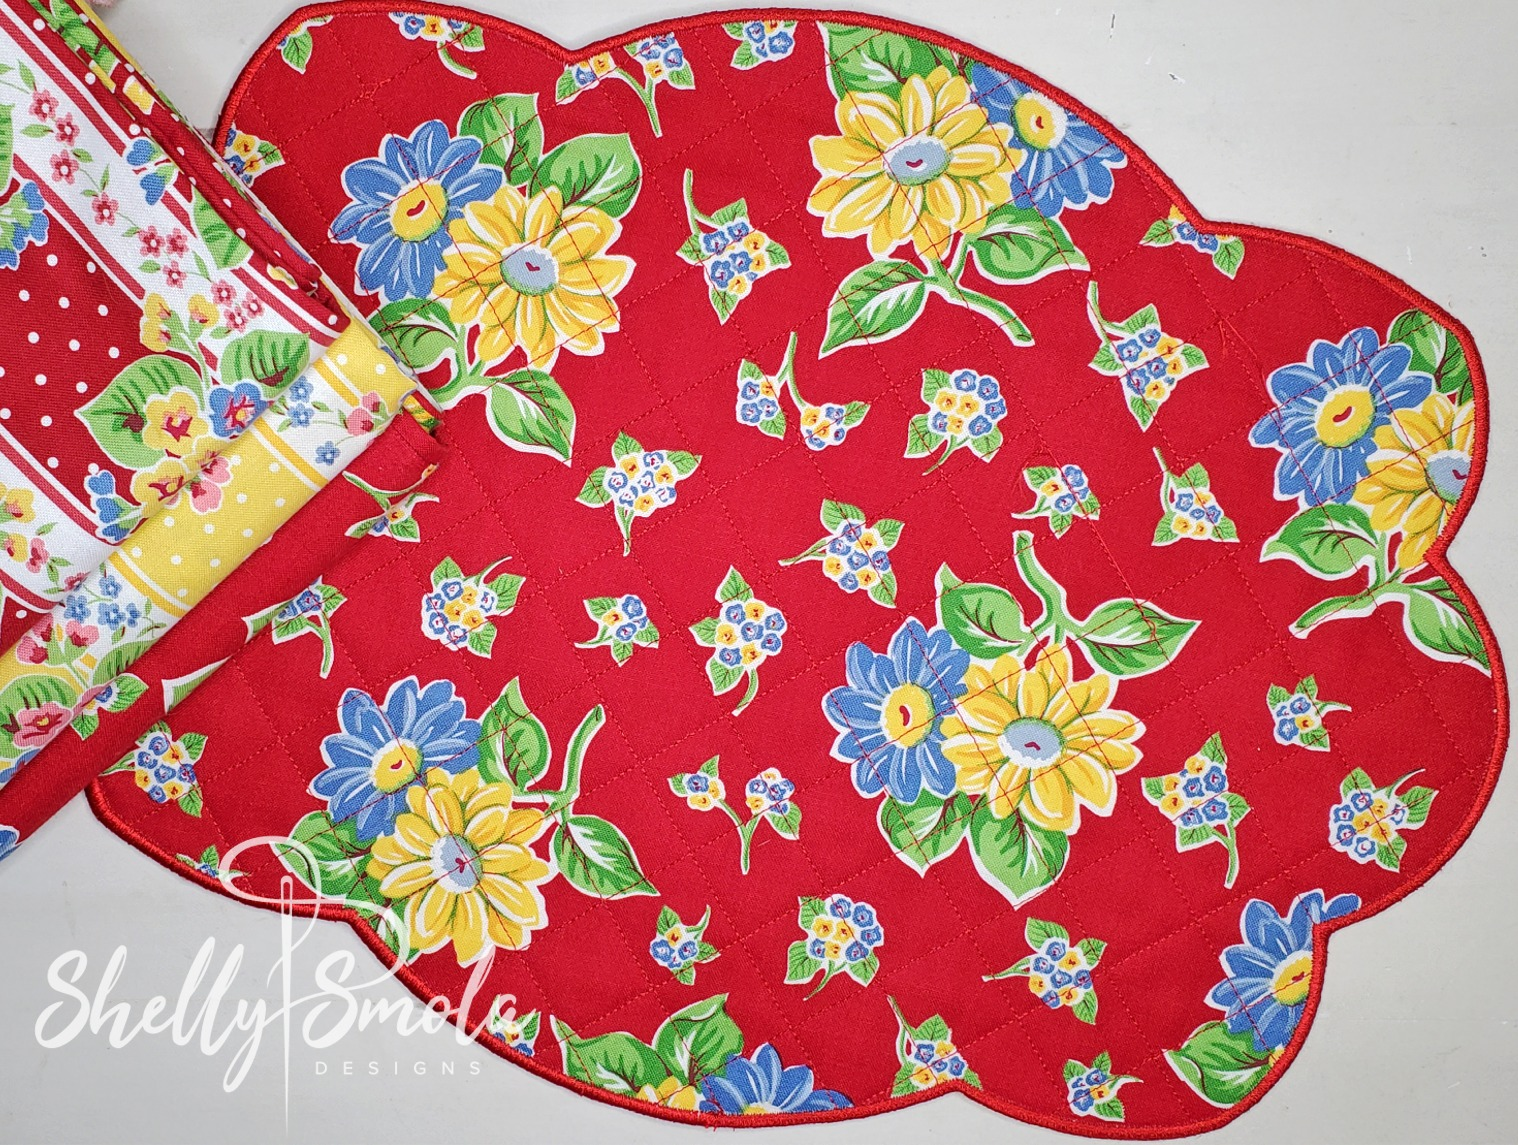 Clara's Placemat by Shelly Smola